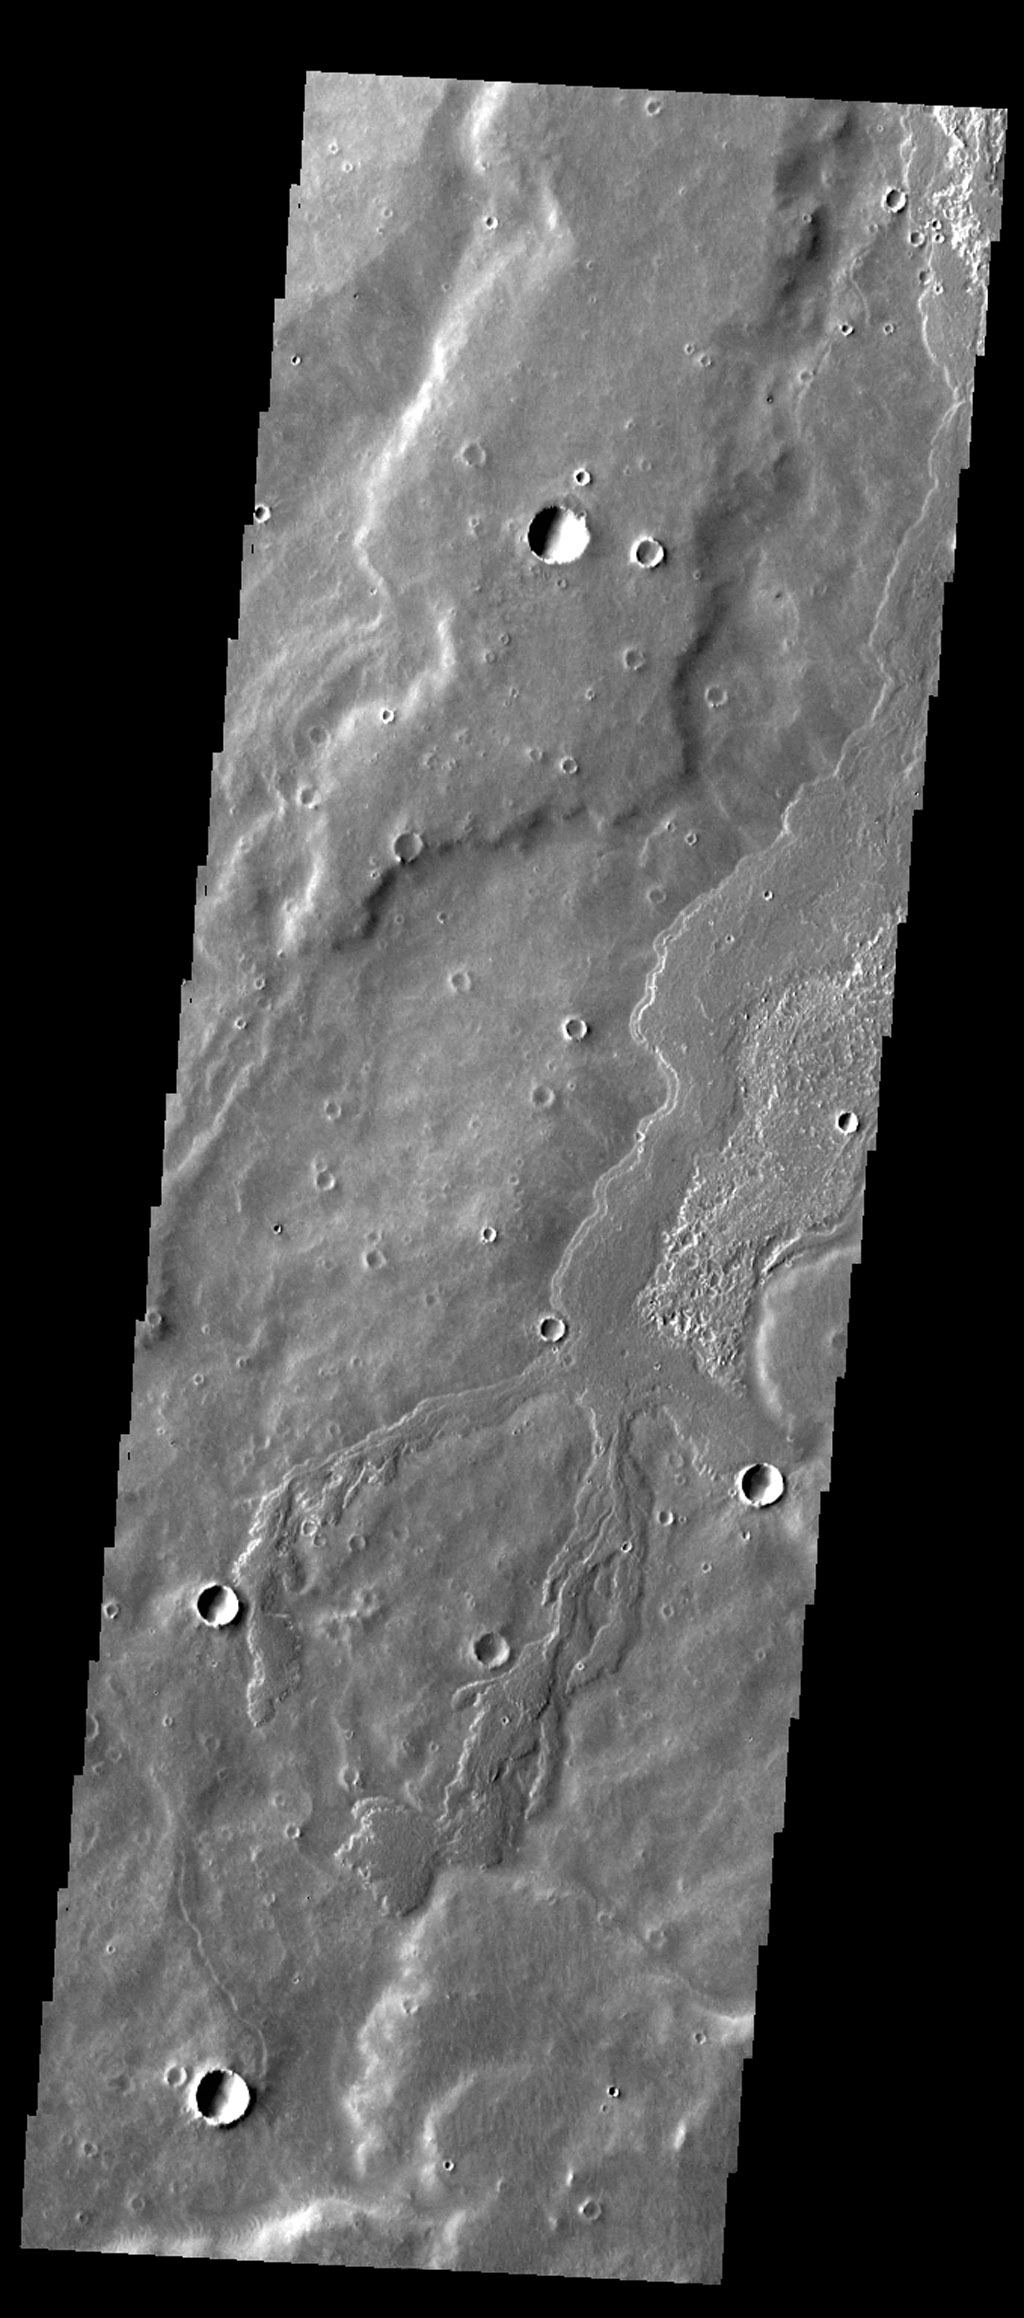 This image captured by NASA's 2001 Mars Odyssey spacecraft of Daedalia Planum contains a narrow lava flow and shows the end of the flow. The end of a lava flow is often called the 'toe' and is formed when the eruption creating the flow slows down or stops